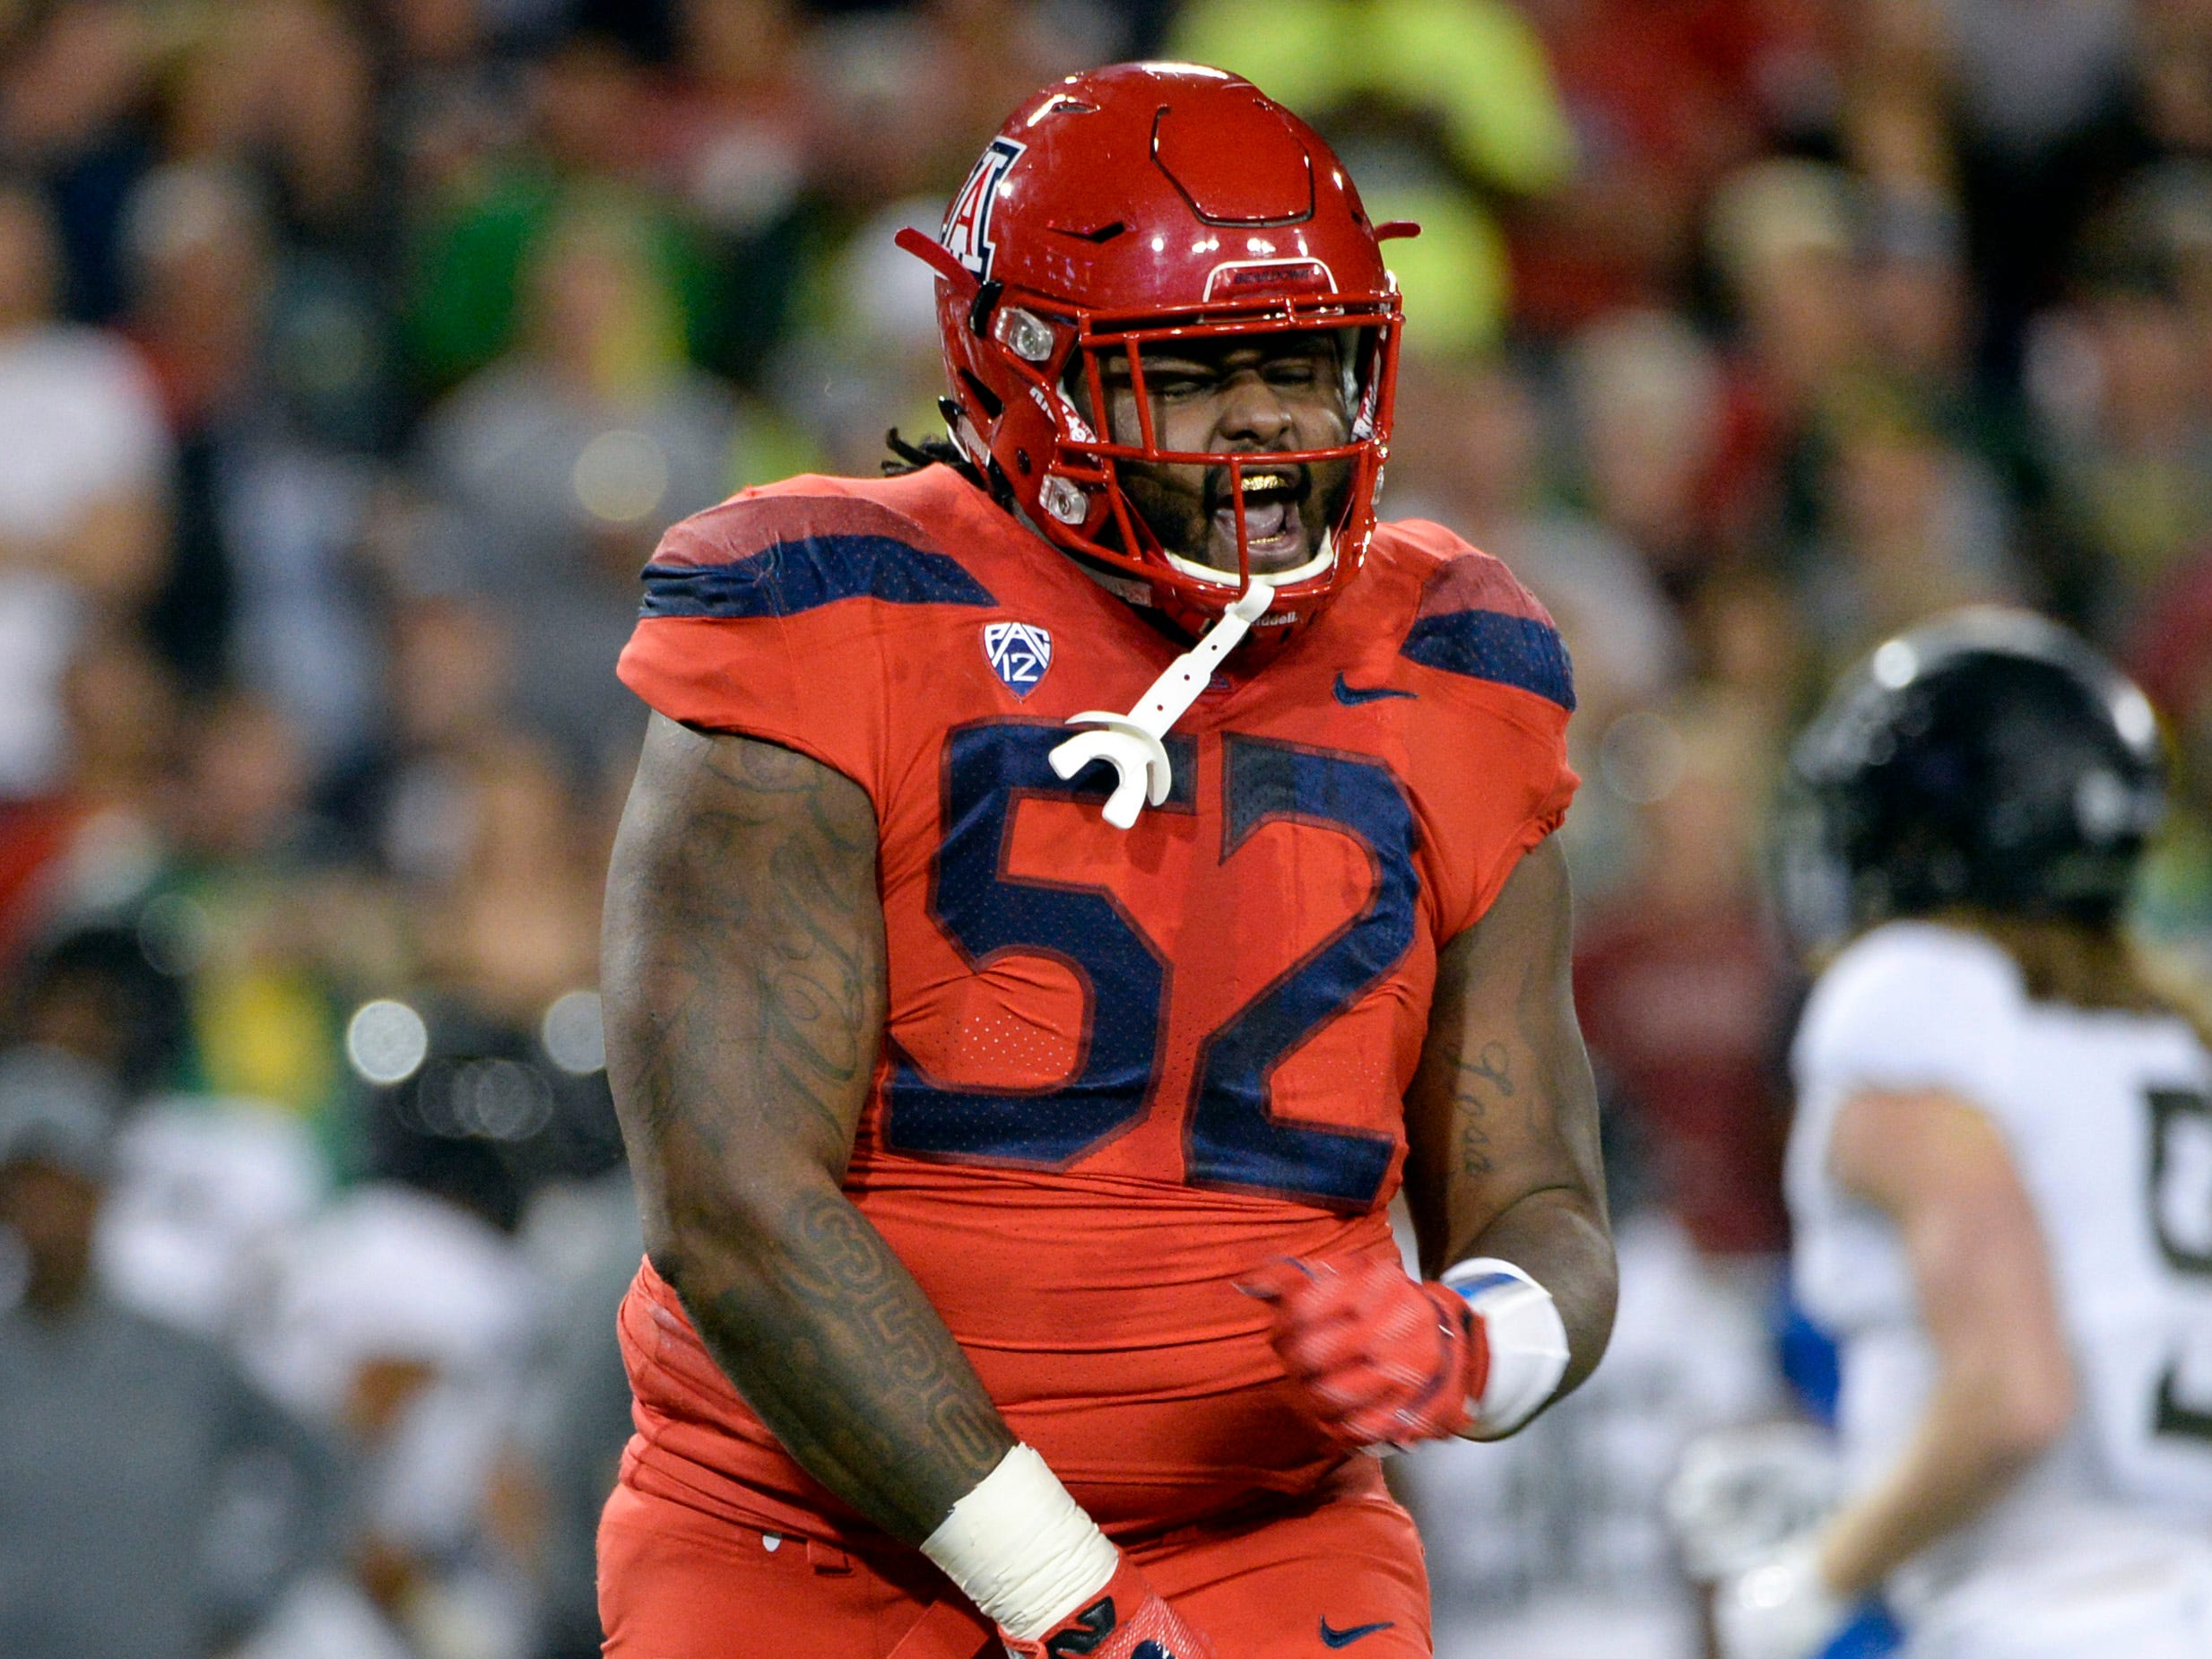 PJ Johnson, DT, Arizona